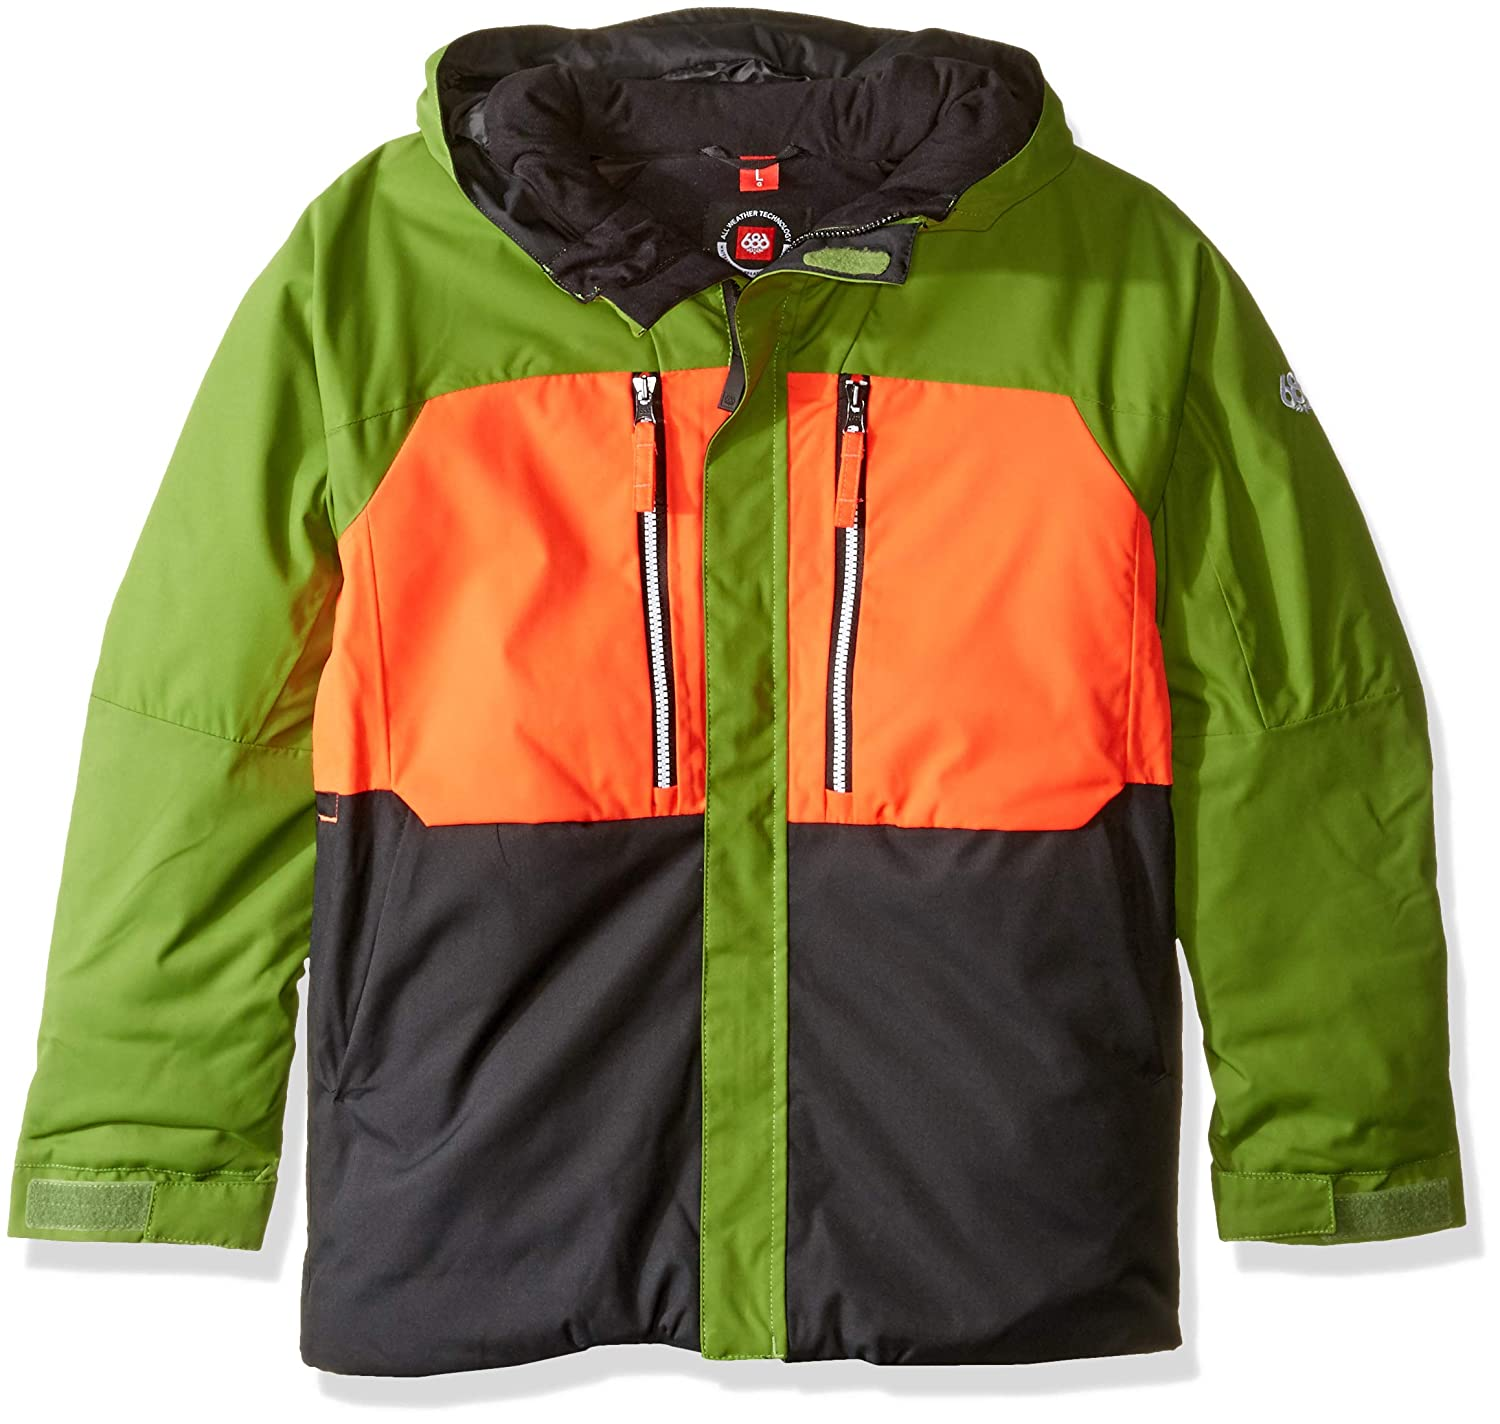 Image of 686 Boys' Ether Termagraph Jackets | Waterproof Ski/Snowboard Jackets Jackets